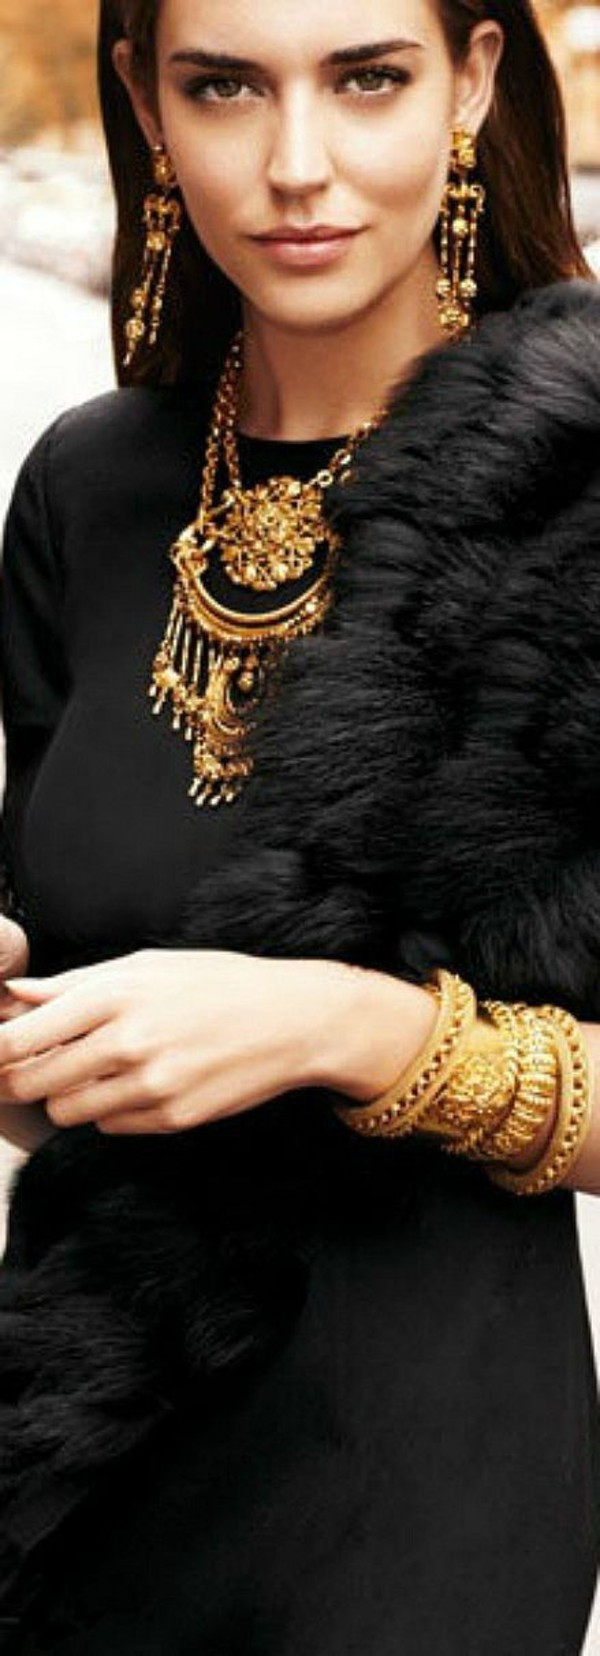 scarf fur shawl fur scarf jewels bracelets